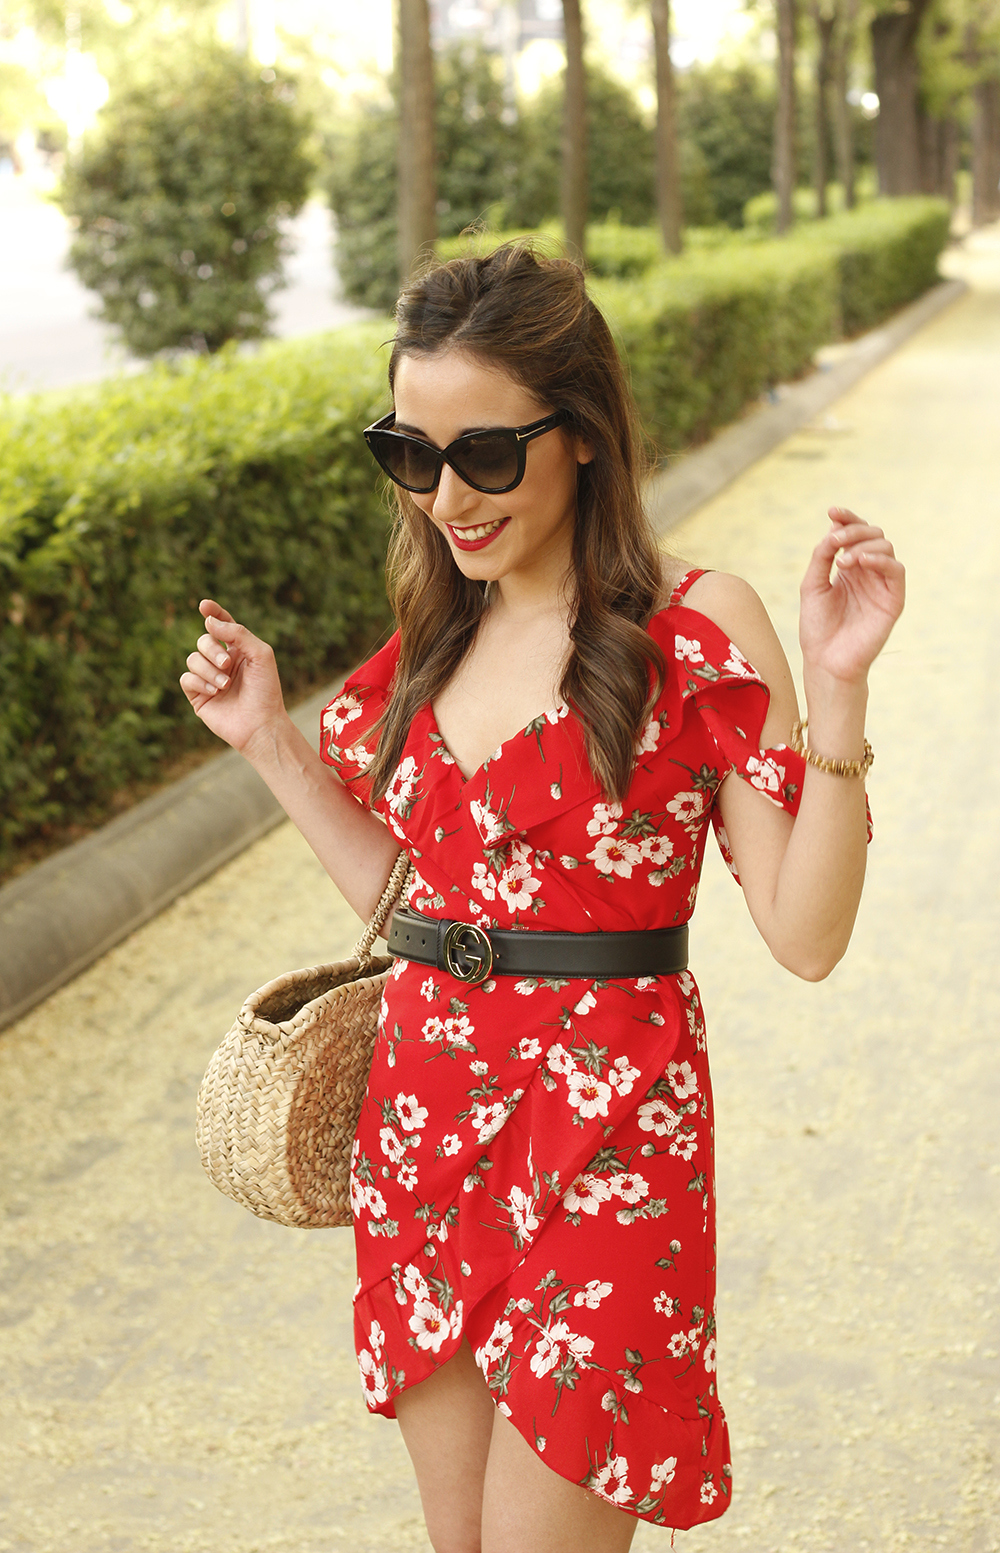 Red flower dress nude heels gucci belt rafia bag style fashion summer07